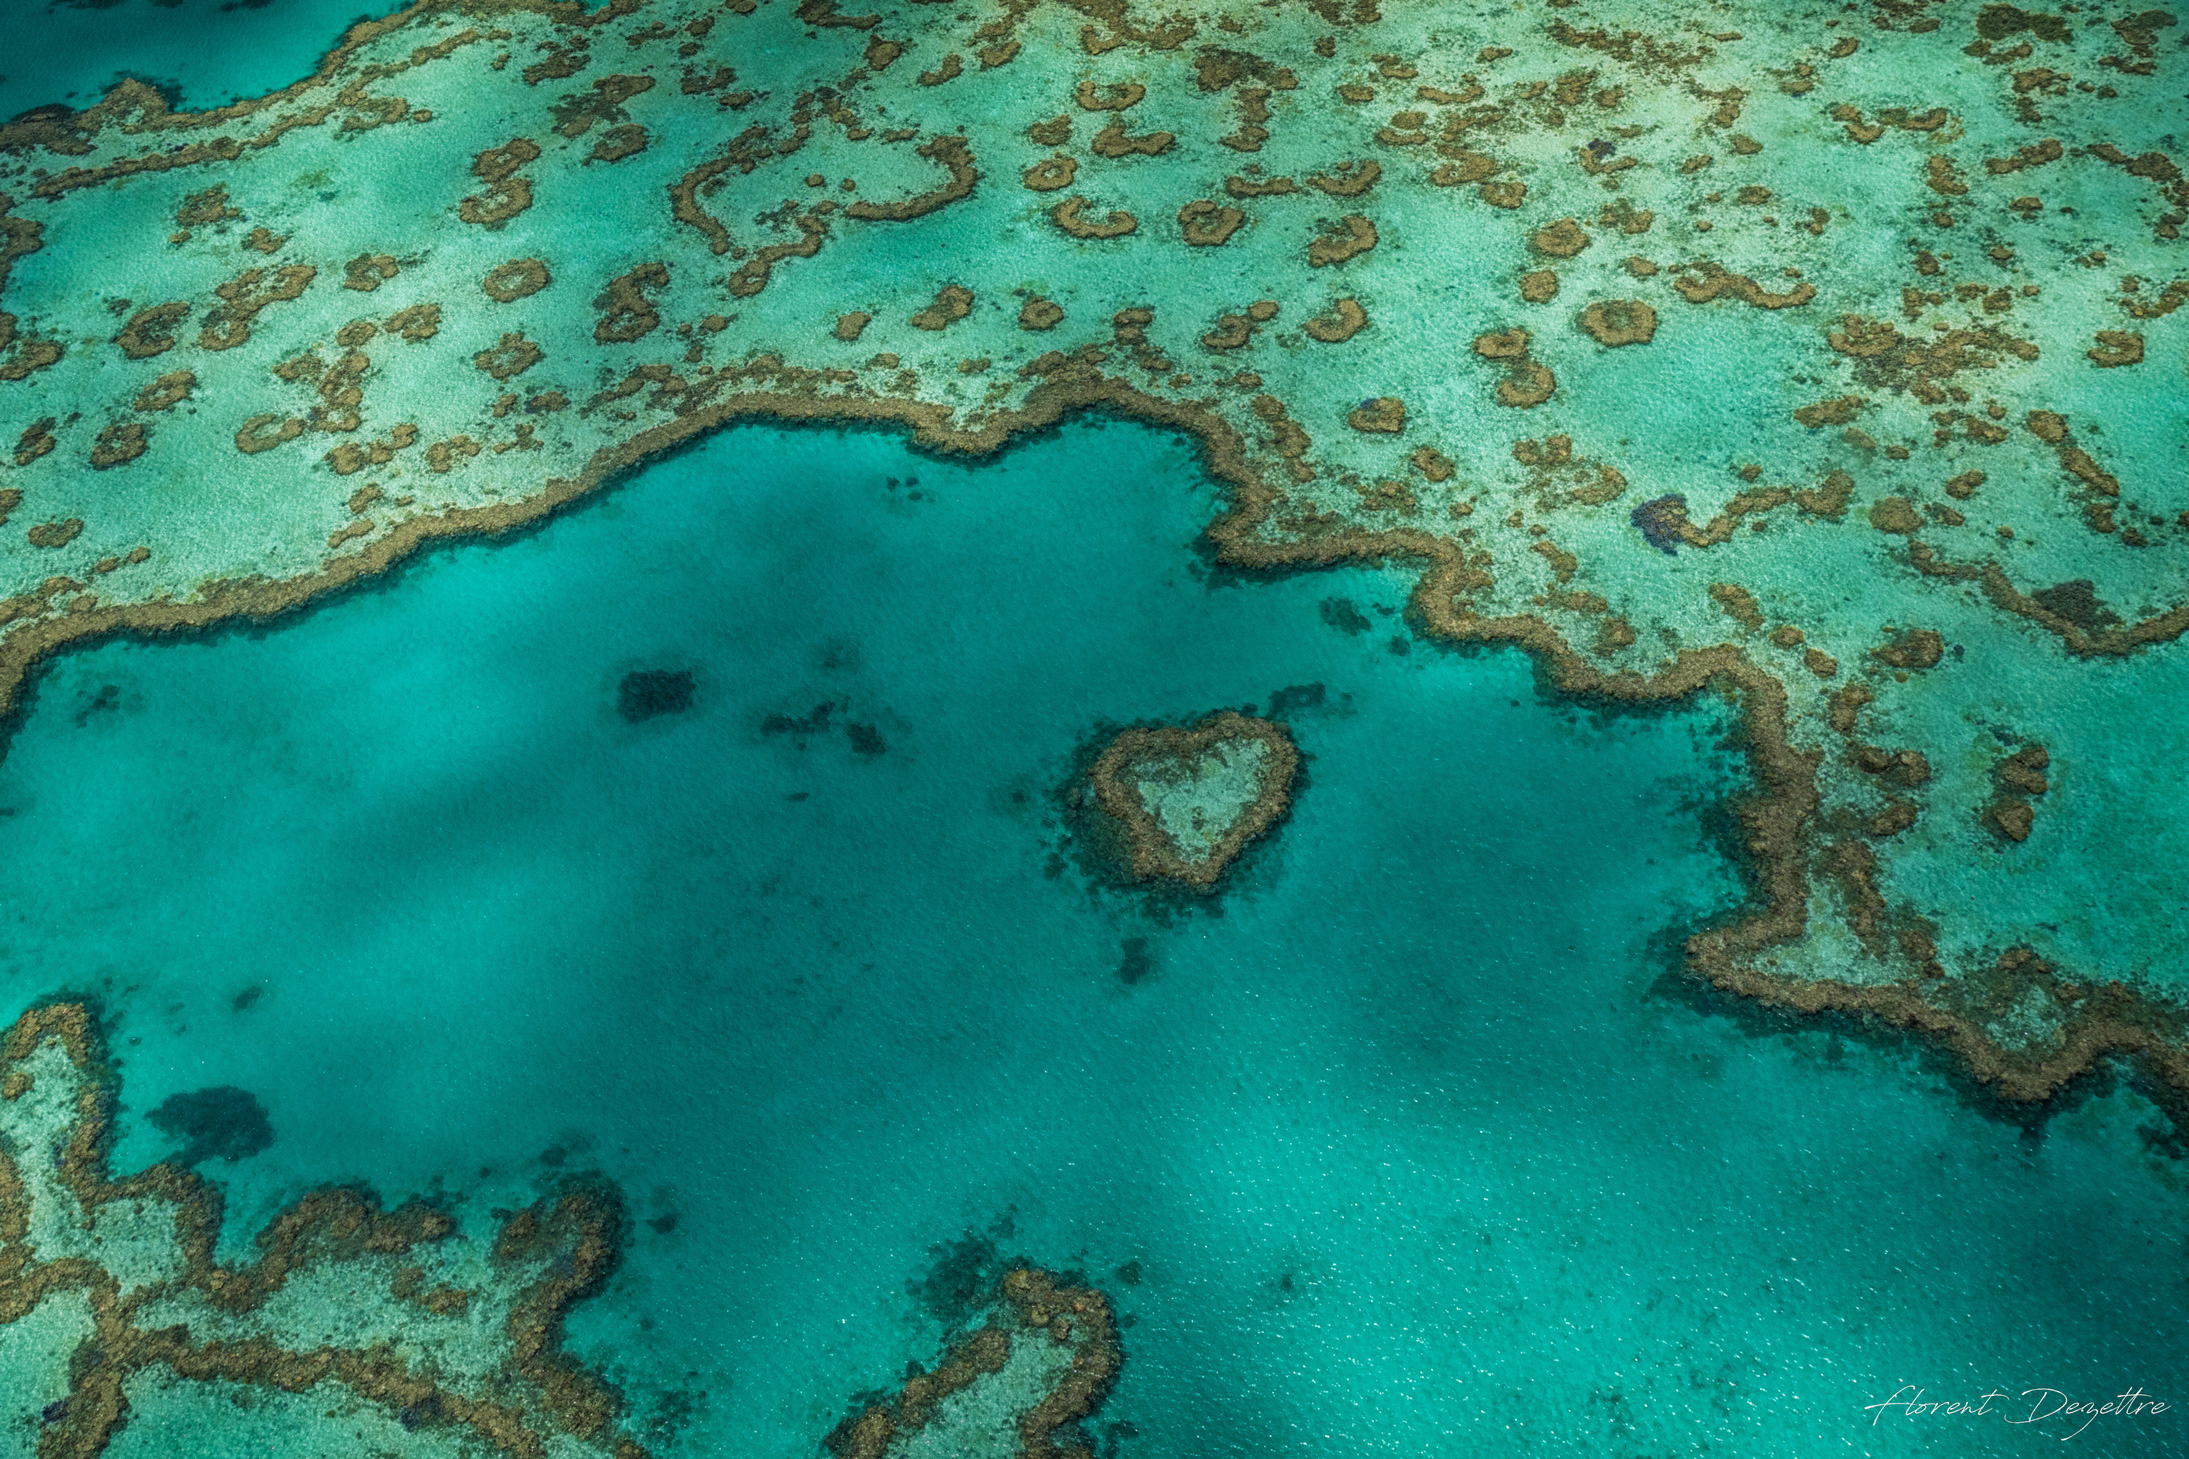 In-The-Heart-Of-The-Reef